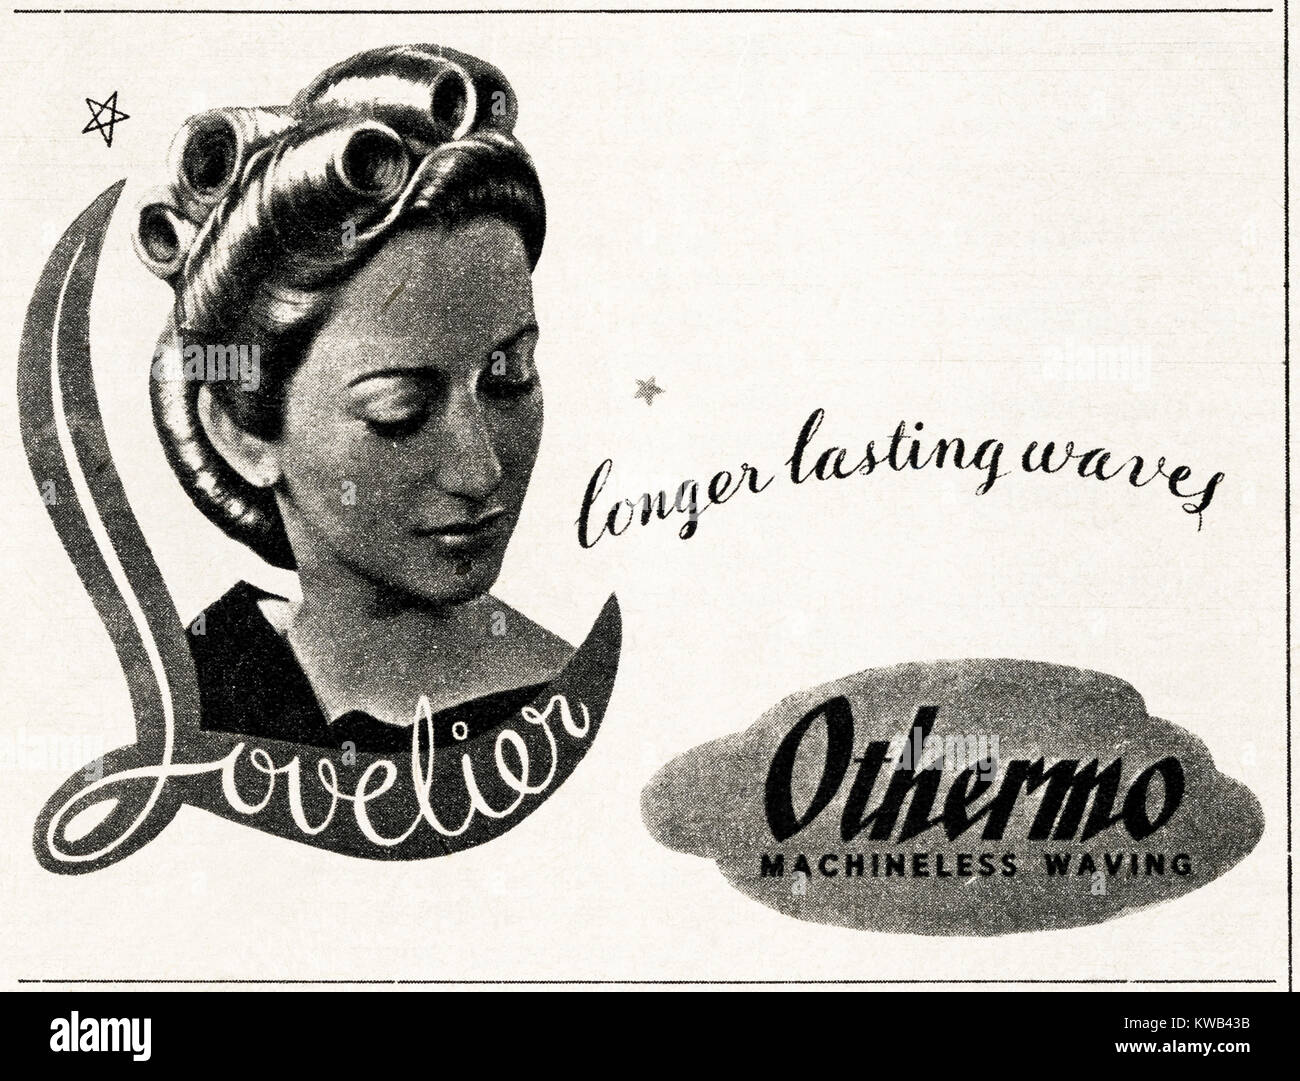 1940s old vintage original advert advertising Othermo machinless waving for ladies hair in magazine circa 1947 when - Stock Image